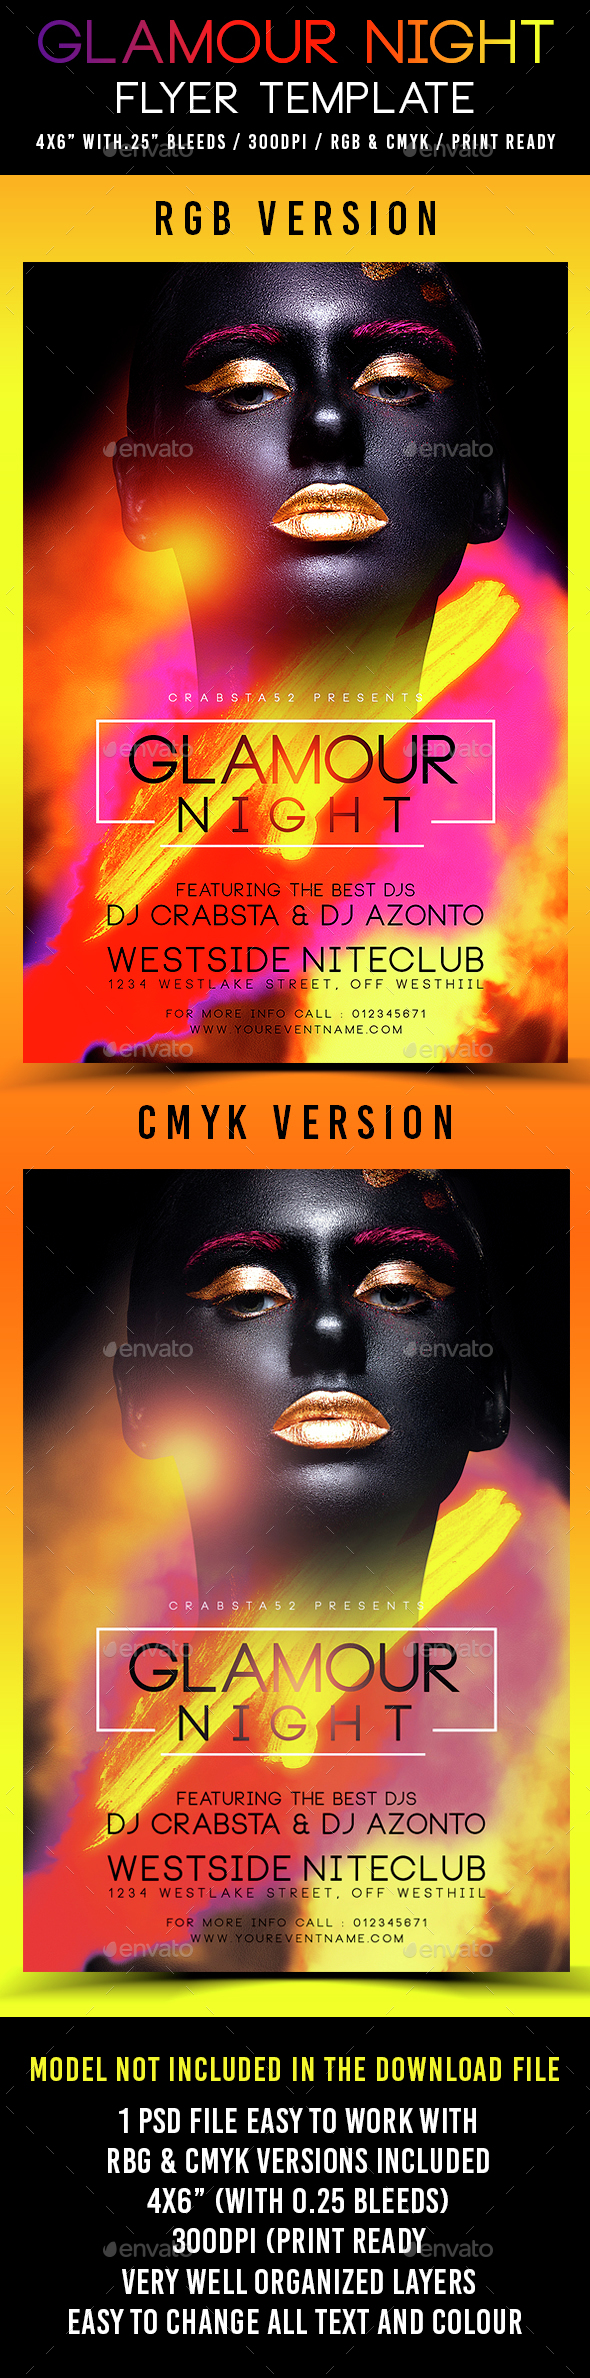 Glamour Night Flyer Template - Clubs & Parties Events